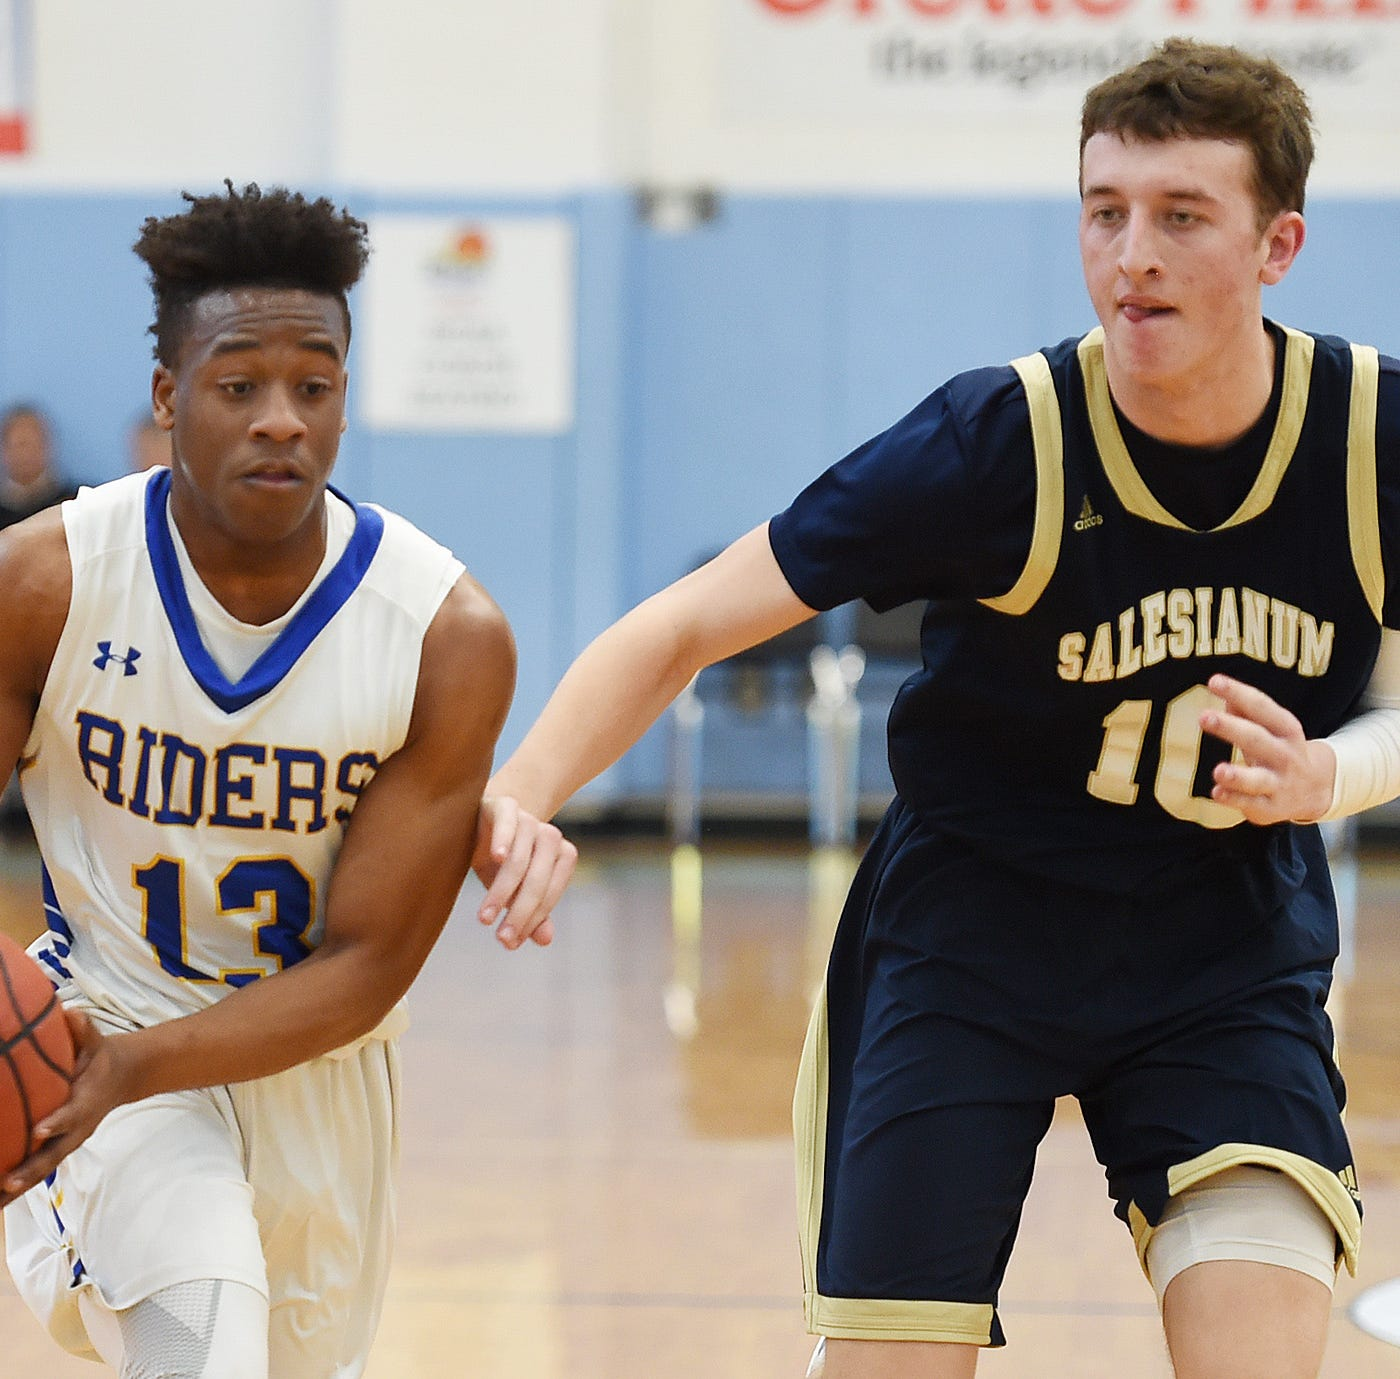 Ranking the Midseason Top 25 players in Delaware boys basketball